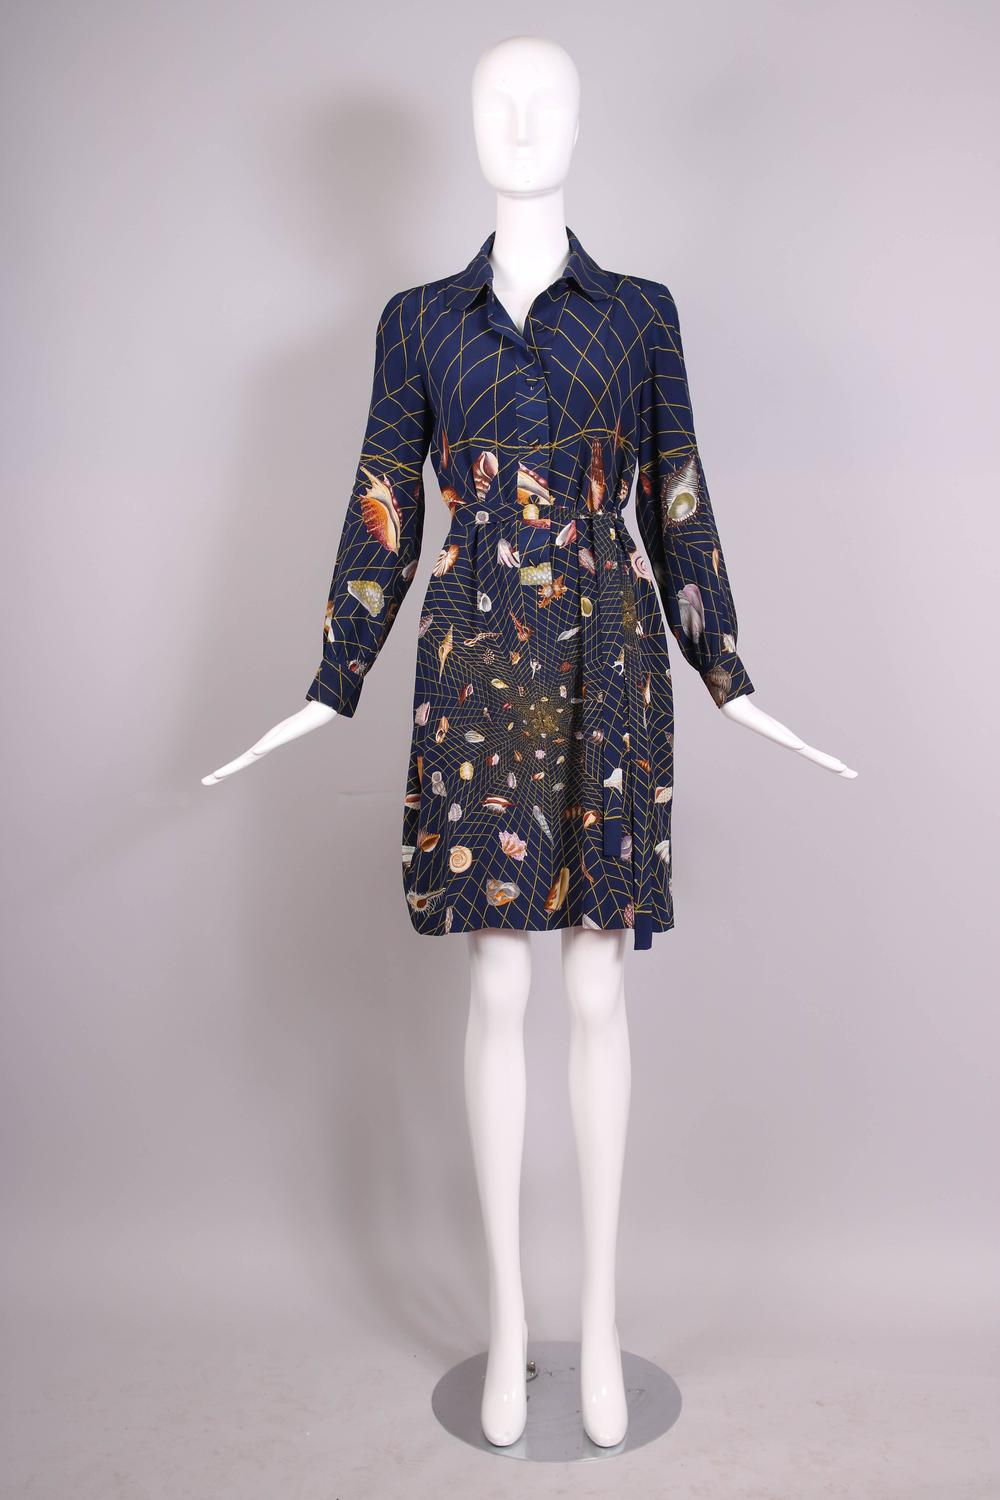 ea804dda766 1970 s Gucci Graphic Silk Belted Shirtdress W Iconic Shell Print For Sale  at 1stdibs